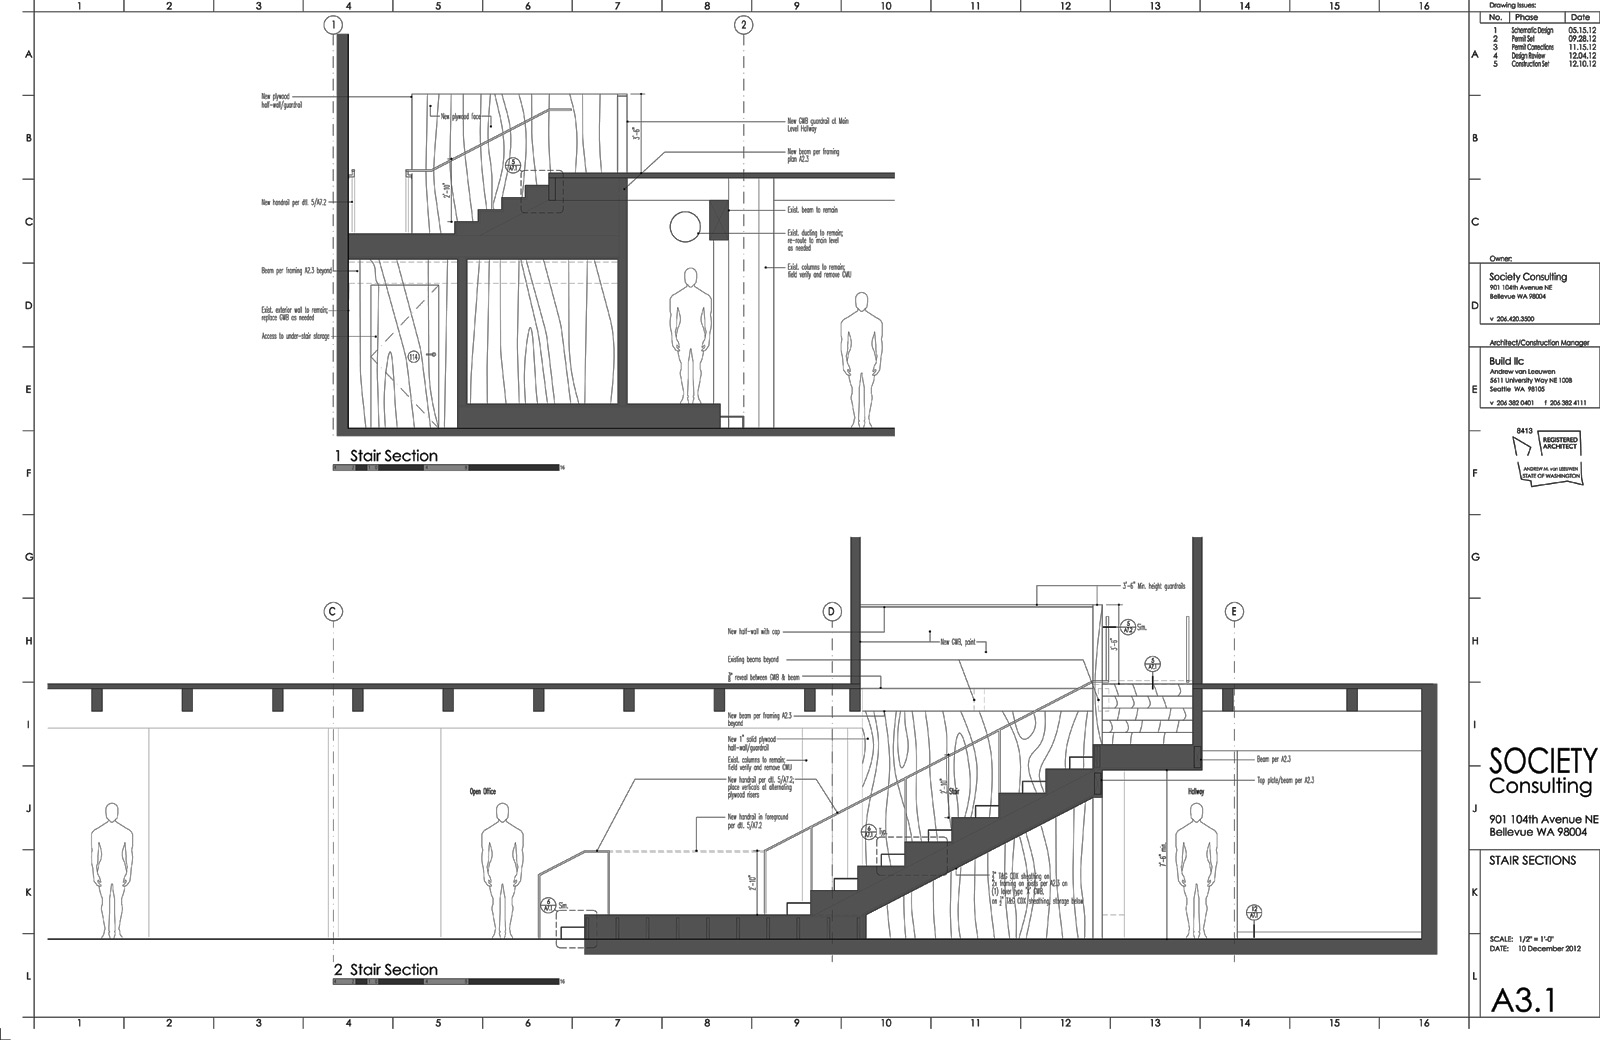 Drawn stairs section Of Commercial Work The Process